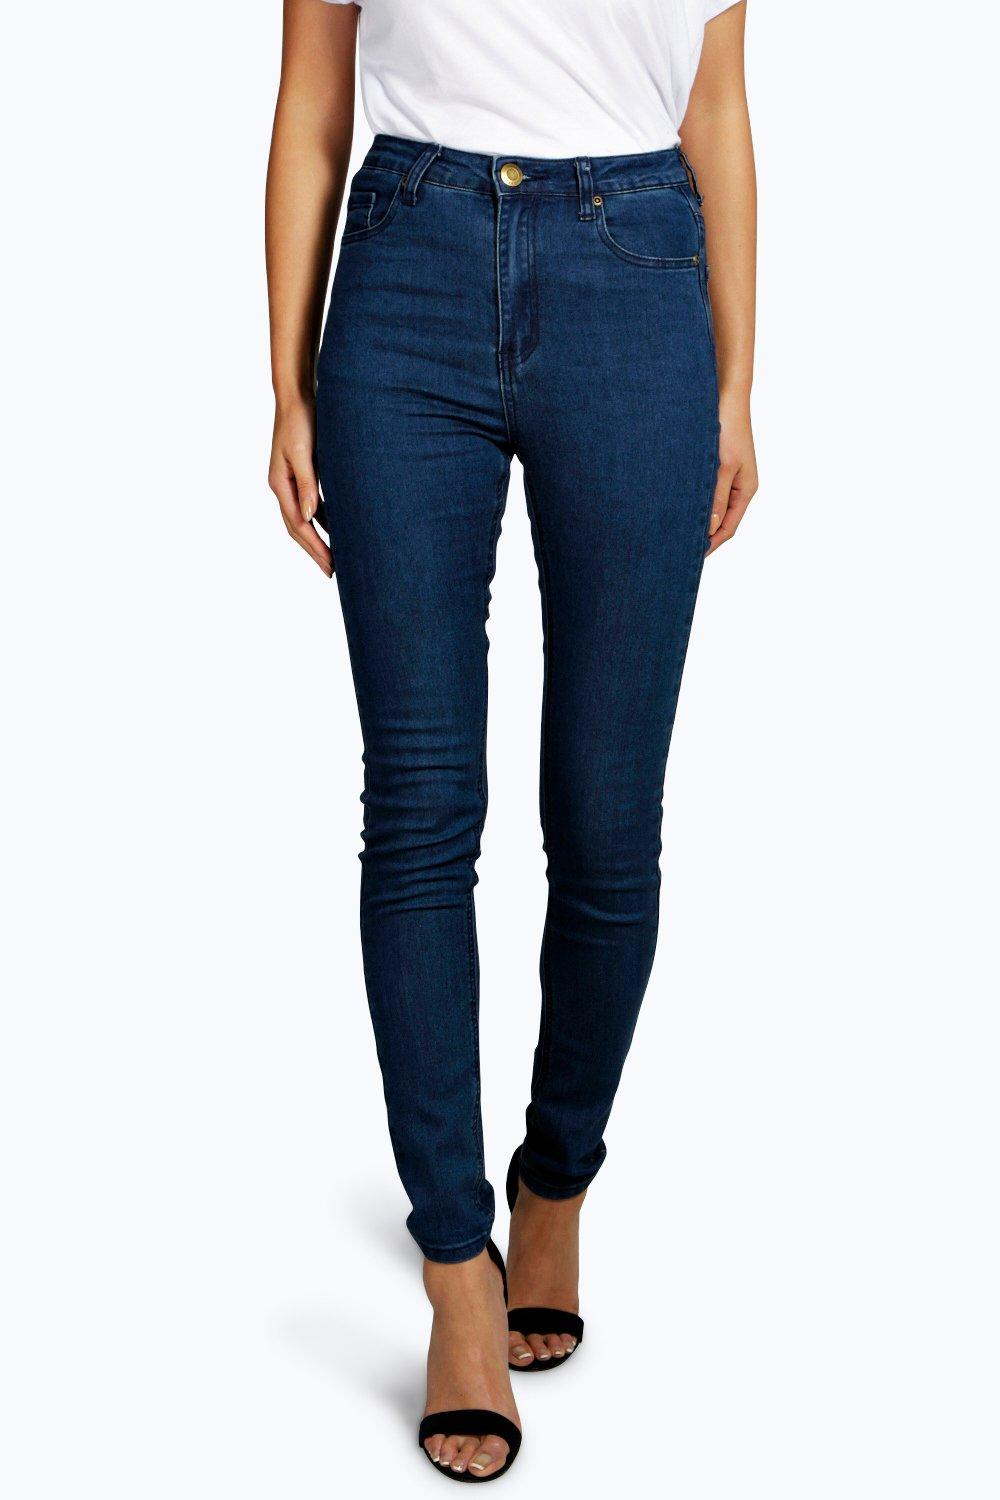 High Waisted Skinny Jeans  dark blue